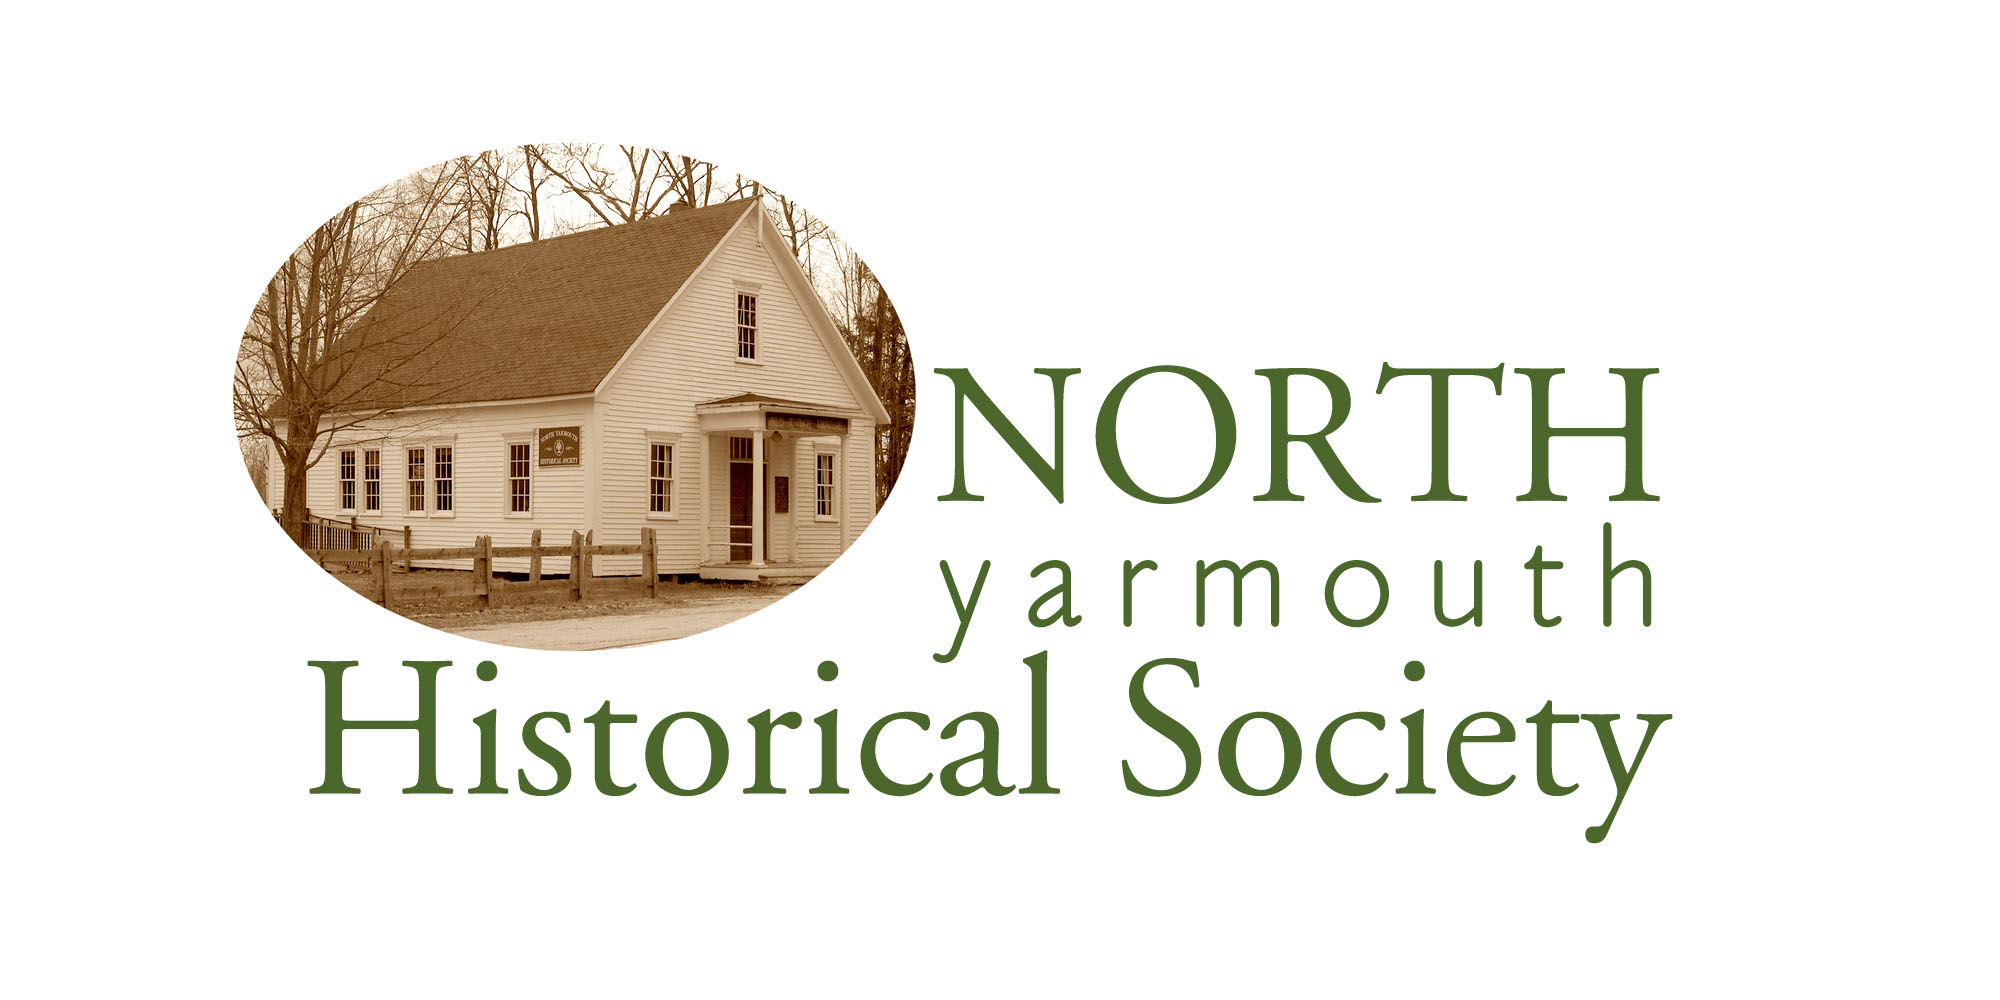 North Yarmouth Historical Society